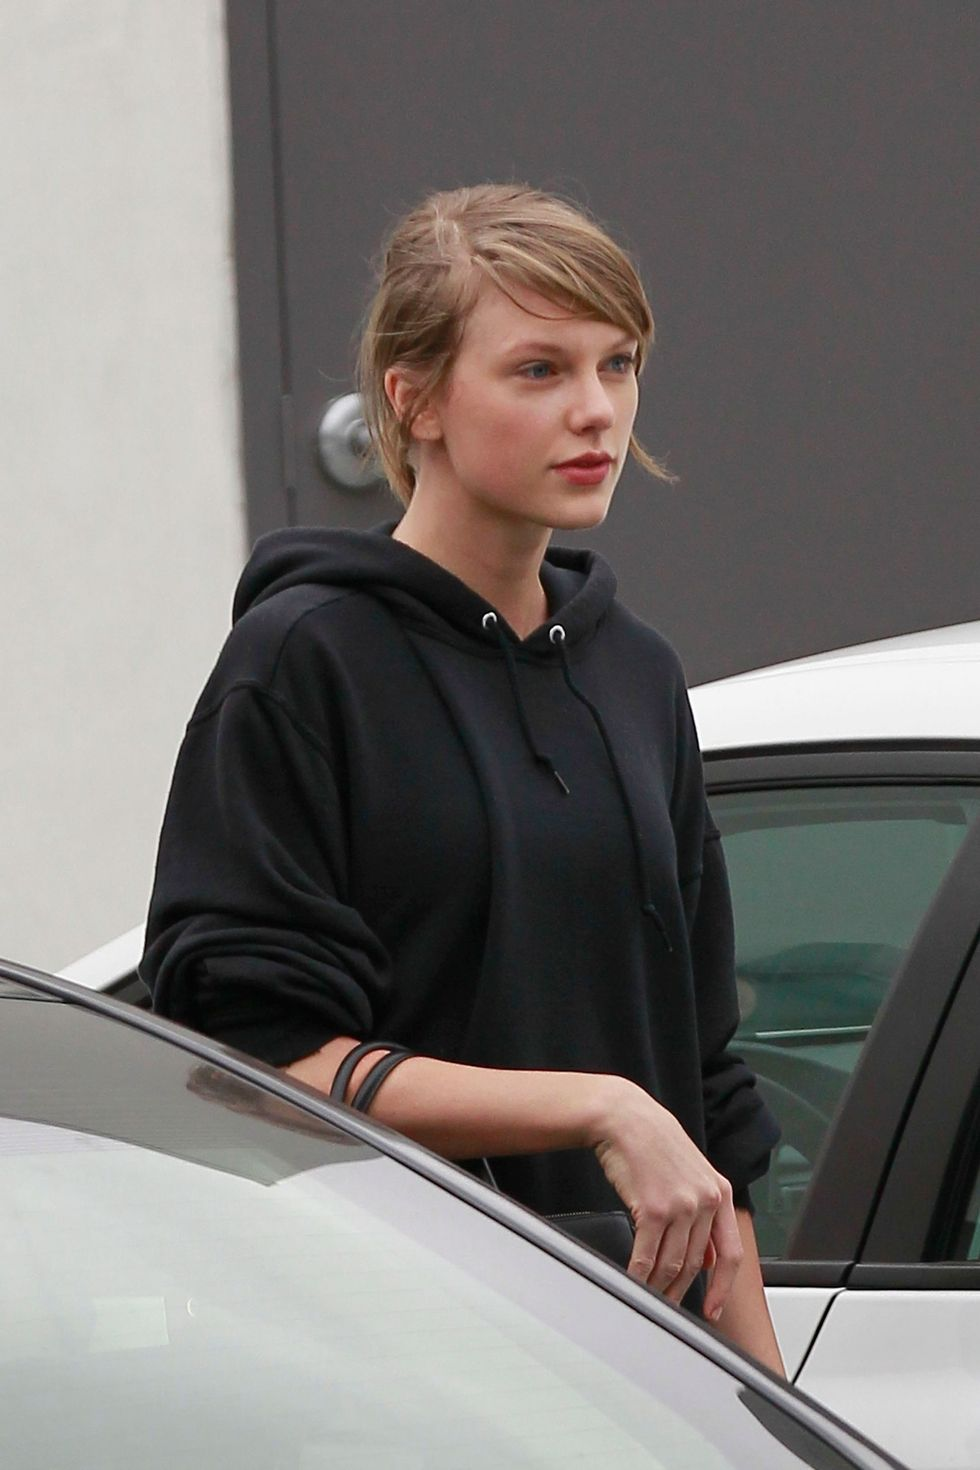 1453215367-spl-taylor-swift-160119.jpg